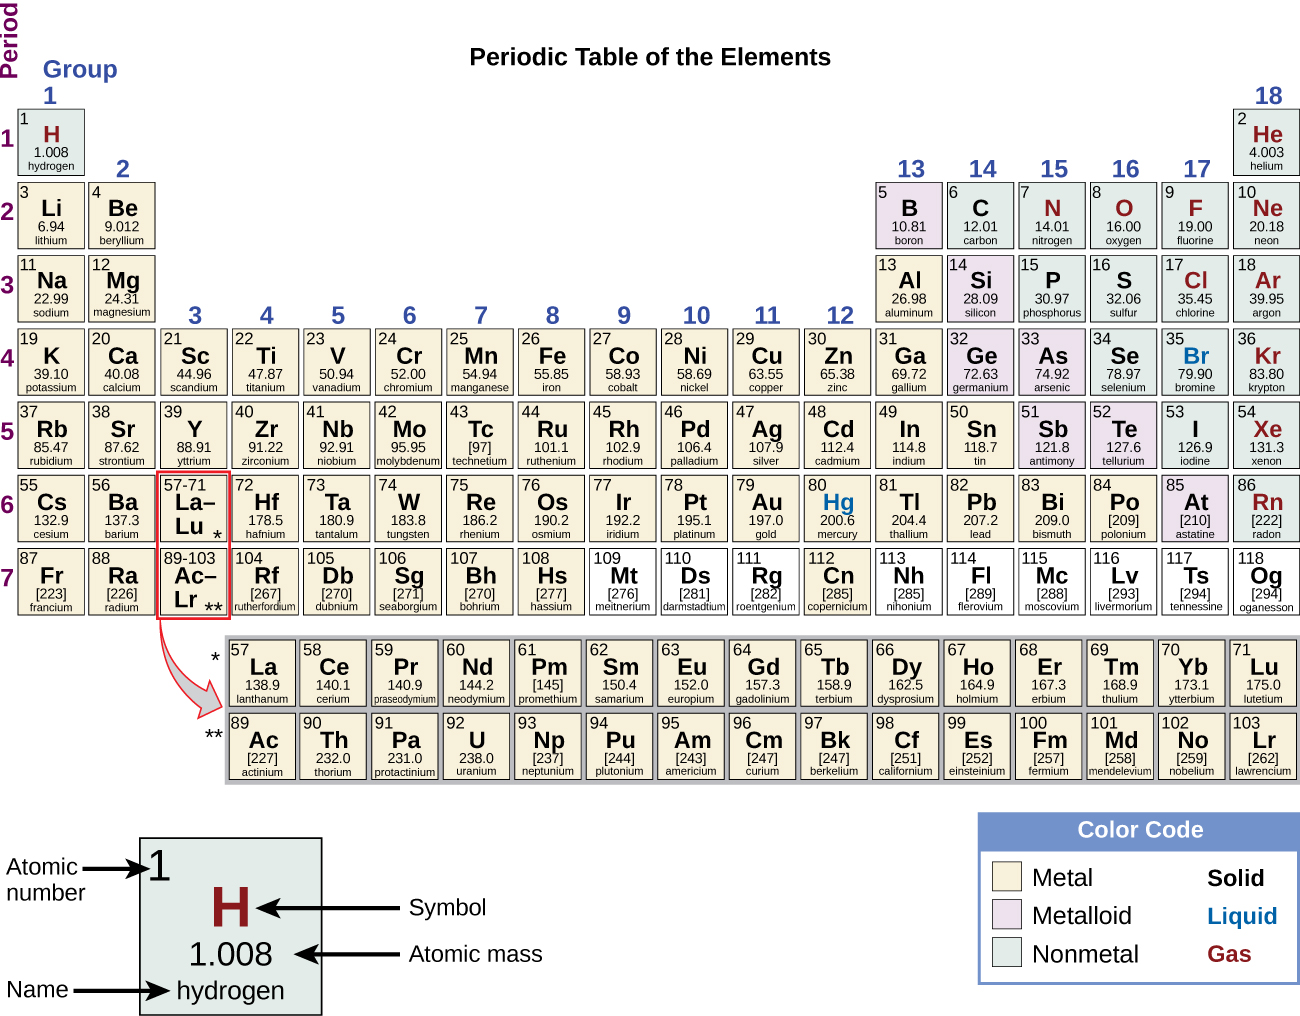 "The Periodic Table of Elements is shown. The 18 columns are labeled ""Group"" and the 7 rows are labeled ""Period."" Below the table to the right is a box labeled ""Color Code"" with different colors for metals, metalloids, and nonmetals, as well as solids, liquids, and gases. To the left of this box is an enlarged picture of the upper-left most box on the table. The number 1 is in its upper-left hand corner and is labeled ""Atomic number."" The letter ""H"" is in the middle in red indicating that it is a gas. It is labeled ""Symbol."" Below that is the number 1.008 which is labeled ""Atomic Mass."" Below that is the word hydrogen which is labeled ""name."" The color of the box indicates that it is a nonmetal. Each element will be described in this order: atomic number; name; symbol; whether it is a metal, metalloid, or nonmetal; whether it is a solid, liquid, or gas; and atomic mass. Beginning at the top left of the table, or period 1, group 1, is a box containing ""1; hydrogen; H; nonmetal; gas; and 1.008."" There is only one other element box in period 1, group 18, which contains ""2; helium; H e; nonmetal; gas; and 4.003."" Period 2, group 1 contains ""3; lithium; L i; metal; solid; and 6.94"" Group 2 contains ""4; beryllium; B e; metal; solid; and 9.012."" Groups 3 through 12 are skipped and group 13 contains ""5; boron; B; metalloid; solid; 10.81."" Group 14 contains ""6; carbon; C; nonmetal; solid; and 12.01."" Group 15 contains ""7; nitrogen; N; nonmetal; gas; and 14.01."" Group 16 contains ""8; oxygen; O; nonmetal; gas; and 16.00."" Group 17 contains ""9; fluorine; F; nonmetal; gas; and 19.00."" Group 18 contains ""10; neon; N e; nonmetal; gas; and 20.18."" Period 3, group 1 contains ""11; sodium; N a; metal; solid; and 22.99."" Group 2 contains ""12; magnesium; M g; metal; solid; and 24.31."" Groups 3 through 12 are skipped again in period 3 and group 13 contains ""13; aluminum; A l; metal; solid; and 26.98."" Group 14 contains ""14; silicon; S i; metalloid; solid; and 28.09."" Group 15 contains ""15; phosphorous; P; nonmetal; solid; and 30.97."" Group 16 contains ""16; sulfur; S; nonmetal; solid; and 32.06."" Group 17 contains ""17; chlorine; C l; nonmetal; gas; and 35.45."" Group 18 contains ""18; argon; A r; nonmetal; gas; and 39.95."" Period 4, group 1 contains ""19; potassium; K; metal; solid; and 39.10."" Group 2 contains ""20; calcium; C a; metal; solid; and 40.08."" Group 3 contains ""21; scandium; S c; metal; solid; and 44.96."" Group 4 contains ""22; titanium; T i; metal; solid; and 47.87."" Group 5 contains ""23; vanadium; V; metal; solid; and 50.94."" Group 6    contains ""24; chromium; C r; metal; solid; and 52.00."" Group 7 contains ""25; manganese; M n; metal; solid; and 54.94."" Group 8 contains ""26; iron; F e; metal; solid; and 55.85."" Group 9 contains ""27; cobalt; C o; metal; solid; and 58.93."" Group 10 contains ""28; nickel; N i; metal; solid; and 58.69."" Group 11 contains ""29; copper; C u; metal; solid; and 63.55."" Group 12 contains ""30; zinc; Z n; metal; solid; and 65.38."" Group 13 contains ""31; gallium; G a; metal; solid; and 69.72."" Group 14 contains ""32; germanium; G e; metalloid; solid; and 72.63."" Group 15 contains ""33; arsenic; A s; metalloid; solid; and 74.92."" Group 16 contains ""34; selenium; S e; nonmetal; solid; and 78.97."" Group 17 contains ""35; bromine; B r; nonmetal; liquid; and 79.90."" Group 18 contains ""36; krypton; K r; nonmetal; gas; and 83.80."" Period 5, group 1 contains ""37; rubidium; R b; metal; solid; and 85.47."" Group 2 contains ""38; strontium; S r; metal; solid; and 87.62."" Group 3 contains ""39; yttrium; Y; metal; solid; and 88.91."" Group 4 contains ""40; zirconium; Z r; metal; solid; and 91.22."" Group 5 contains ""41; niobium; N b; metal; solid; and 92.91."" Group 6 contains ""42; molybdenum; M o; metal; solid; and 95.95."" Group 7 contains ""43; technetium; T c; metal; solid; and 97."" Group 8 contains ""44; ruthenium; R u; metal; solid; and 101.1."" Group 9 contains ""45; rhodium; R h; metal; solid; and 102.9."" Group 10 contains ""46; palladium; P d; metal; solid; and 106.4."" Group 11 contains ""47; silver; A g; metal; solid; and 107.9."" Group 12 contains ""48; cadmium; C d; metal; solid; and 112.4."" Group 13 contains ""49; indium; I n; metal; solid; and 114.8."" Group 14 contains ""50; tin; S n; metal; solid; and 118.7."" Group 15 contains ""51; antimony; S b; metalloid; solid; and 121.8."" Group 16 contains ""52; tellurium; T e; metalloid; solid; and 127.6."" Group 17 contains ""53; iodine; I; nonmetal; solid; and 126.9."" Group 18 contains ""54; xenon; X e; nonmetal; gas; and 131.3."" Period 6, group 1 contains ""55; cesium; C s; metal; solid; and 132.9."" Group 2 contains ""56; barium; B a; metal; solid; and 137.3."" Group 3 breaks the pattern. The box has a large arrow pointing to a row of elements below the table with atomic numbers ranging from 57-71. In sequential order by atomic number, the first box in this row contains ""57; lanthanum; L a; metal; solid; and 138.9."" To its right, the next is ""58; cerium; C e; metal; solid; and 140.1."" Next is ""59; praseodymium; P r; metal; solid; and 140.9."" Next is ""60; neodymium; N d; metal; solid; and 144.2."" Next is ""61; promethium; P m; metal; solid; and 145."" Next is ""62; samarium; S m; metal; solid; and 150.4."" Next is ""63; europium; E u; metal; solid; and 152.0."" Next is ""64; gadolinium; G d; metal; solid; and 157.3."" Next is ""65; terbium; T b; metal; solid; and 158.9."" Next is ""66; dysprosium; D y; metal; solid; and 162.5."" Next is ""67; holmium; H o; metal; solid; and 164.9."" Next is ""68; erbium; E r; metal; solid; and 167.3."" Next is ""69; thulium; T m; metal; solid; and 168.9."" Next is ""70; ytterbium; Y b; metal; solid; and 173.1."" The last in this special row is ""71; lutetium; L u; metal; solid; and 175.0."" Continuing in period 6, group 4 contains ""72; hafnium; H f; metal; solid; and 178.5."" Group 5 contains ""73; tantalum; T a; metal; solid; and 180.9."" Group 6 contains ""74; tungsten; W; metal; solid; and 183.8."" Group 7 contains ""75; rhenium; R e; metal; solid; and 186.2."" Group 8 contains ""76; osmium; O s; metal; solid; and 190.2."" Group 9 contains ""77; iridium; I r; metal; solid; and 192.2."" Group 10 contains ""78; platinum; P t; metal; solid; and 195.1."" Group 11 contains ""79; gold; A u; metal; solid; and 197.0."" Group 12 contains ""80; mercury; H g; metal; liquid; and 200.6."" Group 13 contains ""81; thallium; T l; metal; solid; and 204.4."" Group 14 contains ""82; lead; P b; metal; solid; and 207.2."" Group 15 contains ""83; bismuth; B i; metal; solid; and 209.0."" Group 16 contains ""84; polonium; P o; metal; solid; and 209."" Group 17 contains ""85; astatine; A t; metalloid; solid; and 210."" Group 18 contains ""86; radon; R n; nonmetal; gas; and 222."" Period 7, group 1 contains ""87; francium; F r; metal; solid; and 223."" Group 2 contains ""88; radium; R a; metal; solid; and 226."" Group 3 breaks the pattern much like what occurs in period 6. A large arrow points from the box in period 7, group 3 to a special row containing the elements with atomic numbers ranging from 89-103, just below the row which contains atomic numbers 57-71. In sequential order by atomic number, the first box in this row contains ""89; actinium; A c; metal; solid; and 227."" To its right, the next is ""90; thorium; T h; metal; solid; and 232.0."" Next is ""91; protactinium; P a; metal; solid; and 231.0."" Next is ""92; uranium; U; metal; solid; and 238.0."" Next is ""93; neptunium; N p; metal; solid; and N p."" Next is ""94; plutonium; P u; metal; solid; and 244."" Next is ""95; americium; A m; metal; solid; and 243."" Next is ""96; curium; C m; metal; solid; and 247."" Next is ""97; berkelium; B k; metal; solid; and 247."" Next is ""98; californium; C f; metal; solid; and 251."" Next is ""99; einsteinium; E s; metal; solid; and 252."" Next is ""100; fermium; F m; metal; solid; and 257."" Next is ""101; mendelevium; M d; metal; solid; and 258."" Next is ""102; nobelium; N o; metal; solid; and 259."" The last in this special row is ""103; lawrencium; L r; metal; solid; and 262."" Continuing in period 7, group 4 contains ""104; rutherfordium; R f; metal; solid; and 267."" Group 5 contains ""105; dubnium; D b; metal; solid; and 270."" Group 6 contains ""106; seaborgium; S g; metal; solid; and 271."" Group 7 contains ""107; bohrium; B h; metal; solid; and 270."" Group 8 contains ""108; hassium; H s; metal; solid; and 277."" Group 9 contains ""109; meitnerium; M t; not indicated; solid; and 276."" Group 10 contains ""110; darmstadtium; D s; not indicated; solid; and 281."" Group 11 contains ""111; roentgenium; R g; not indicated; solid; and 282."" Group 12 contains ""112; copernicium; C n; metal; liquid; and 285."" Group 13 contains ""113; ununtrium; U u t; not indicated; solid; and 285."" Group 14 contains ""114; flerovium; F l; not indicated; solid; and 289."" Group 15 contains ""115; ununpentium; U u p; not indicated; solid; and 288."" Group 16 contains ""116; livermorium; L v; not indicated; solid; and 293."" Group 17 contains ""117; ununseptium; U u s; not indicated; solid; and 294."" Group 18 contains ""118; ununoctium; U u o; not indicated; solid; and 294."""